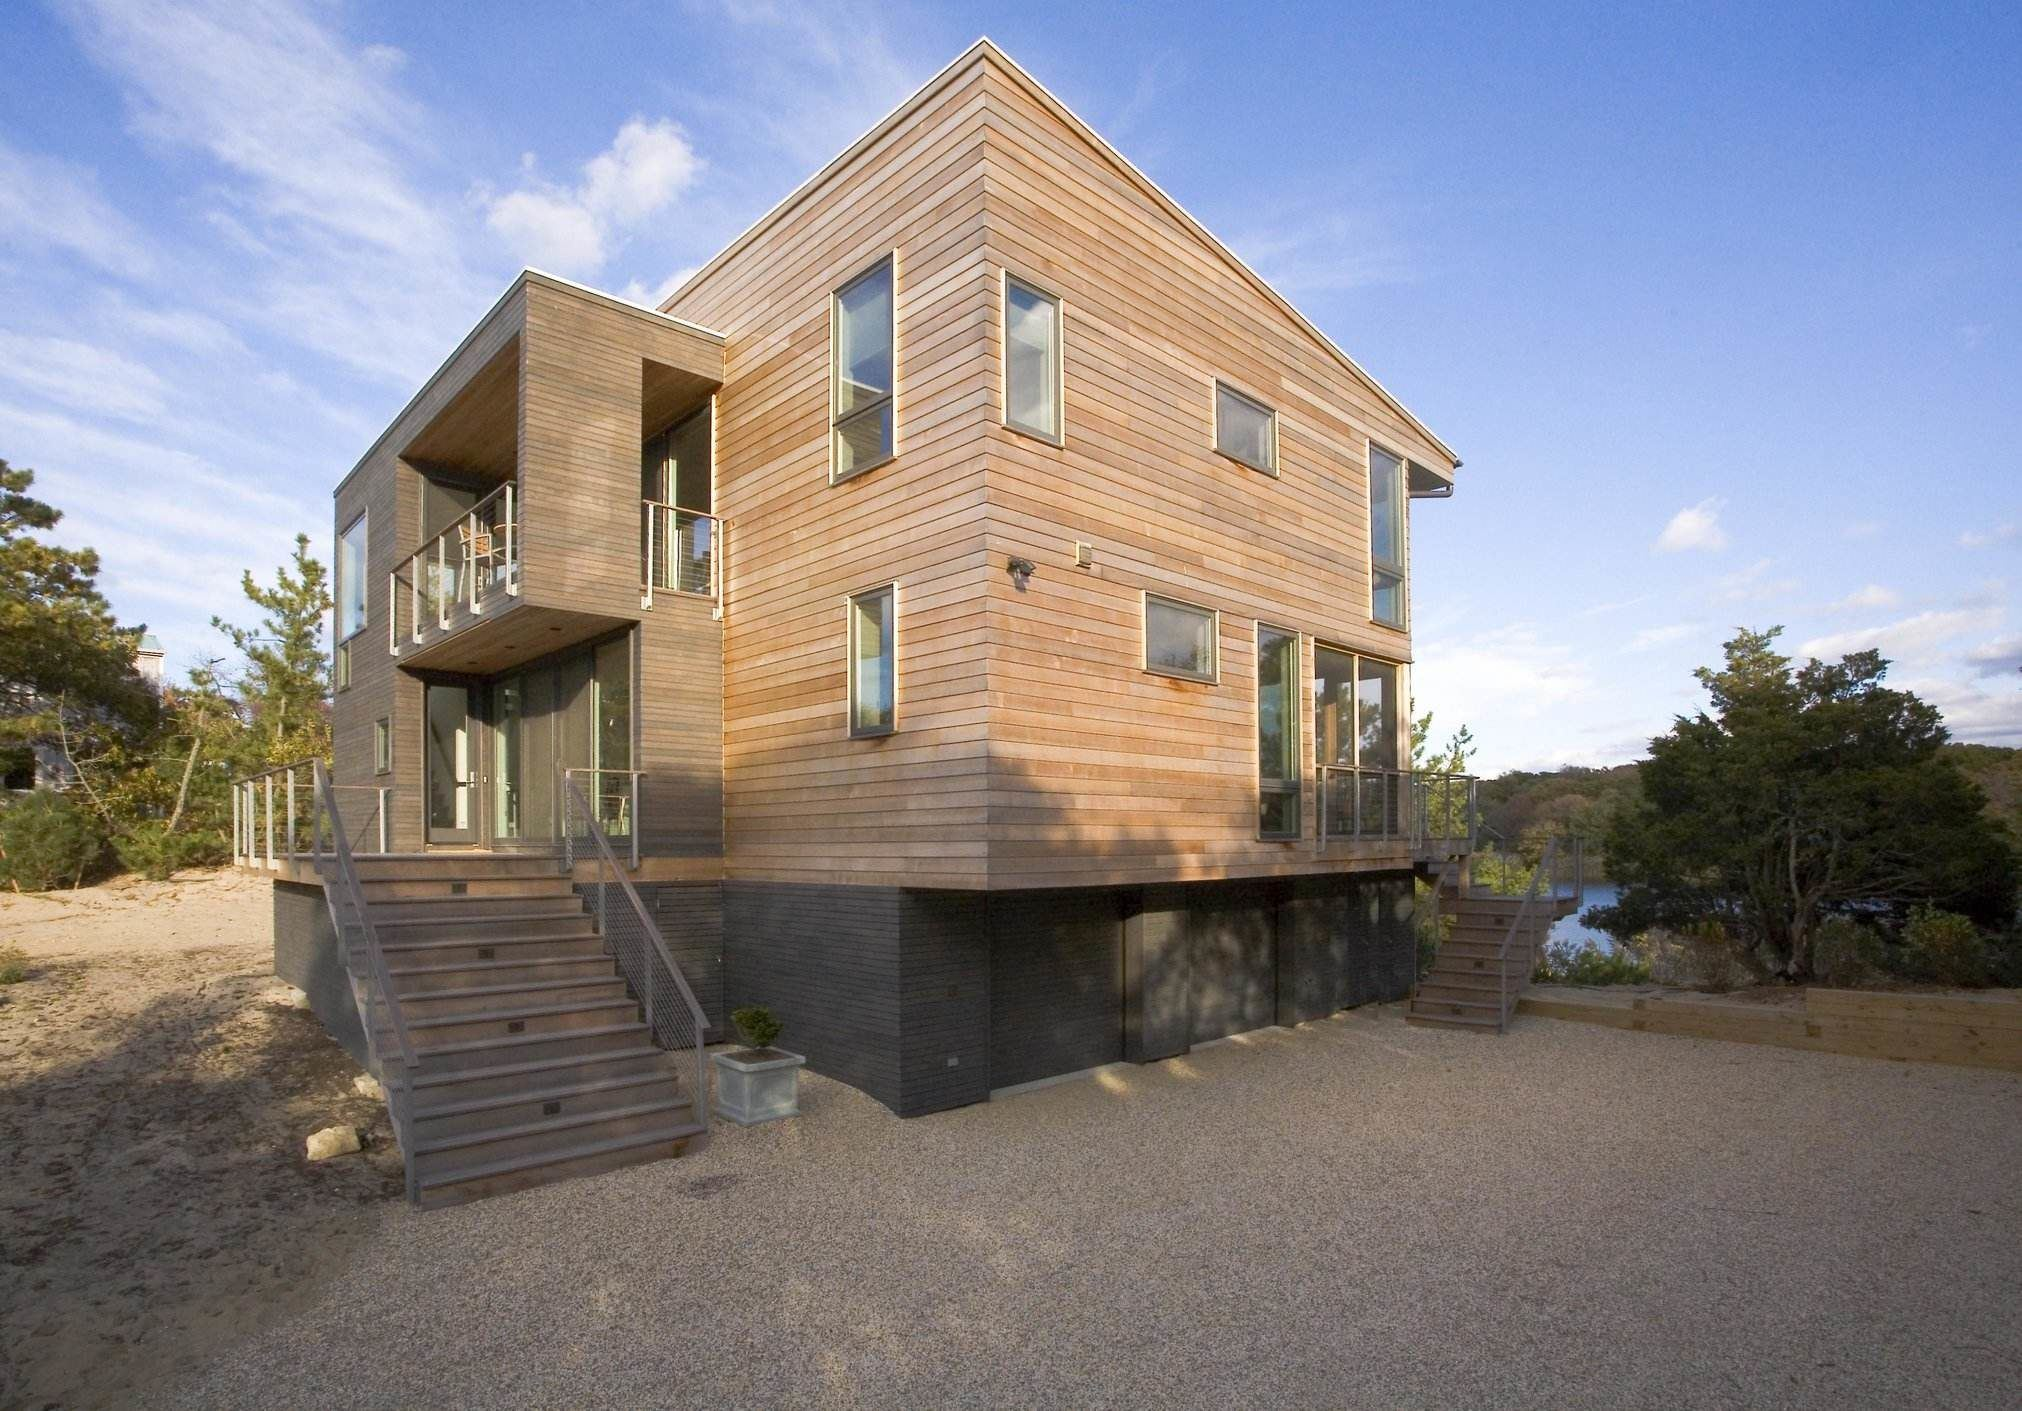 Long Island waterfront home after renovation.